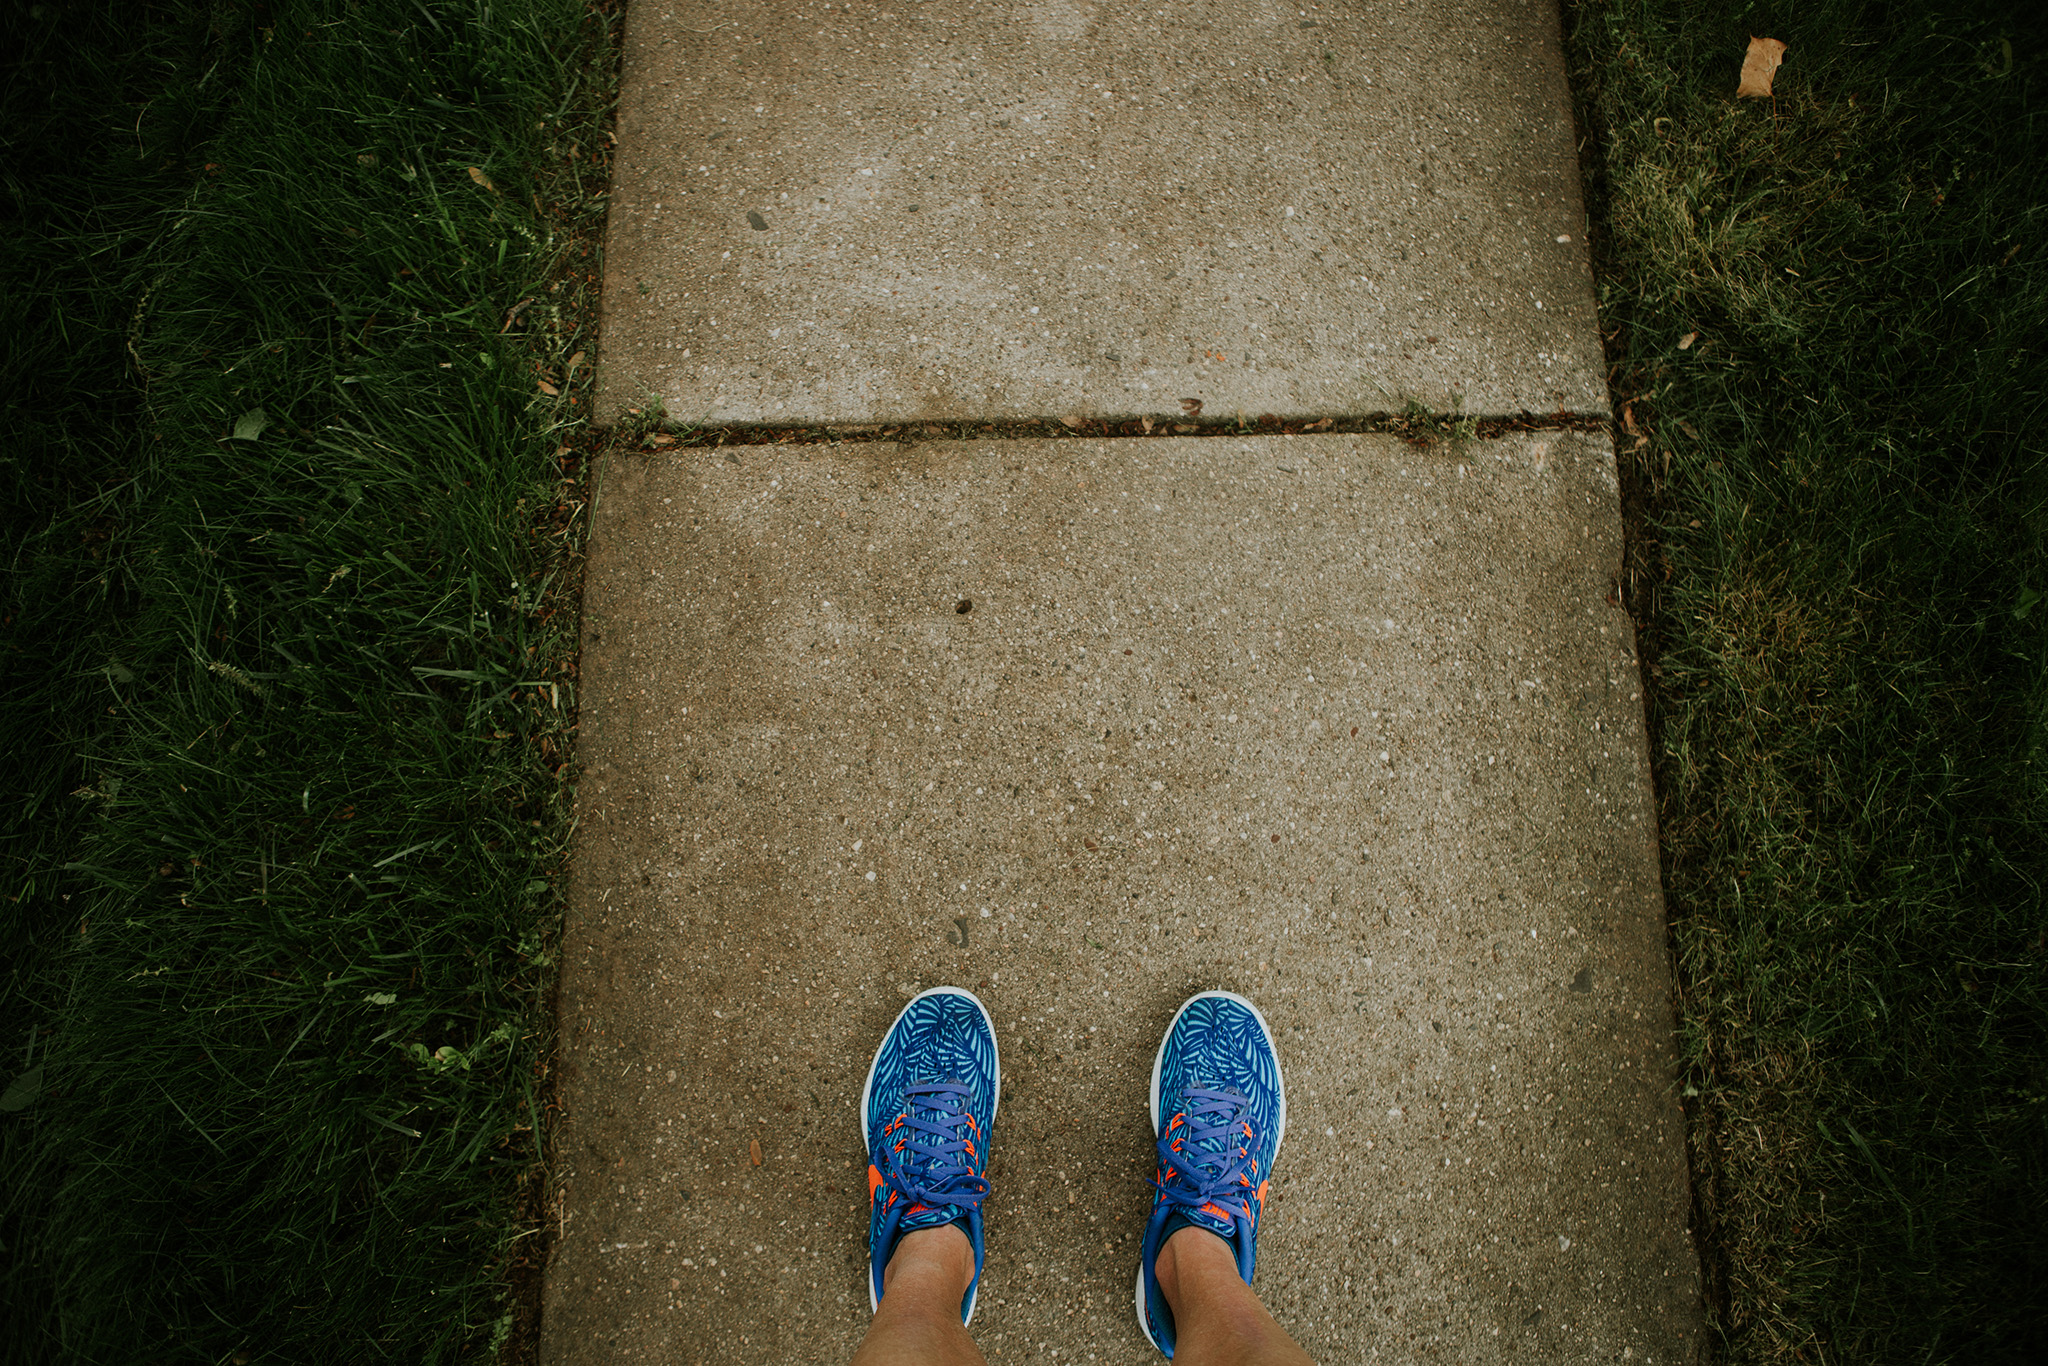 June 8: Running in June in Connecticut felt like heaven. Still hot some days but much, much cooler than my Texas self knew what to do with.